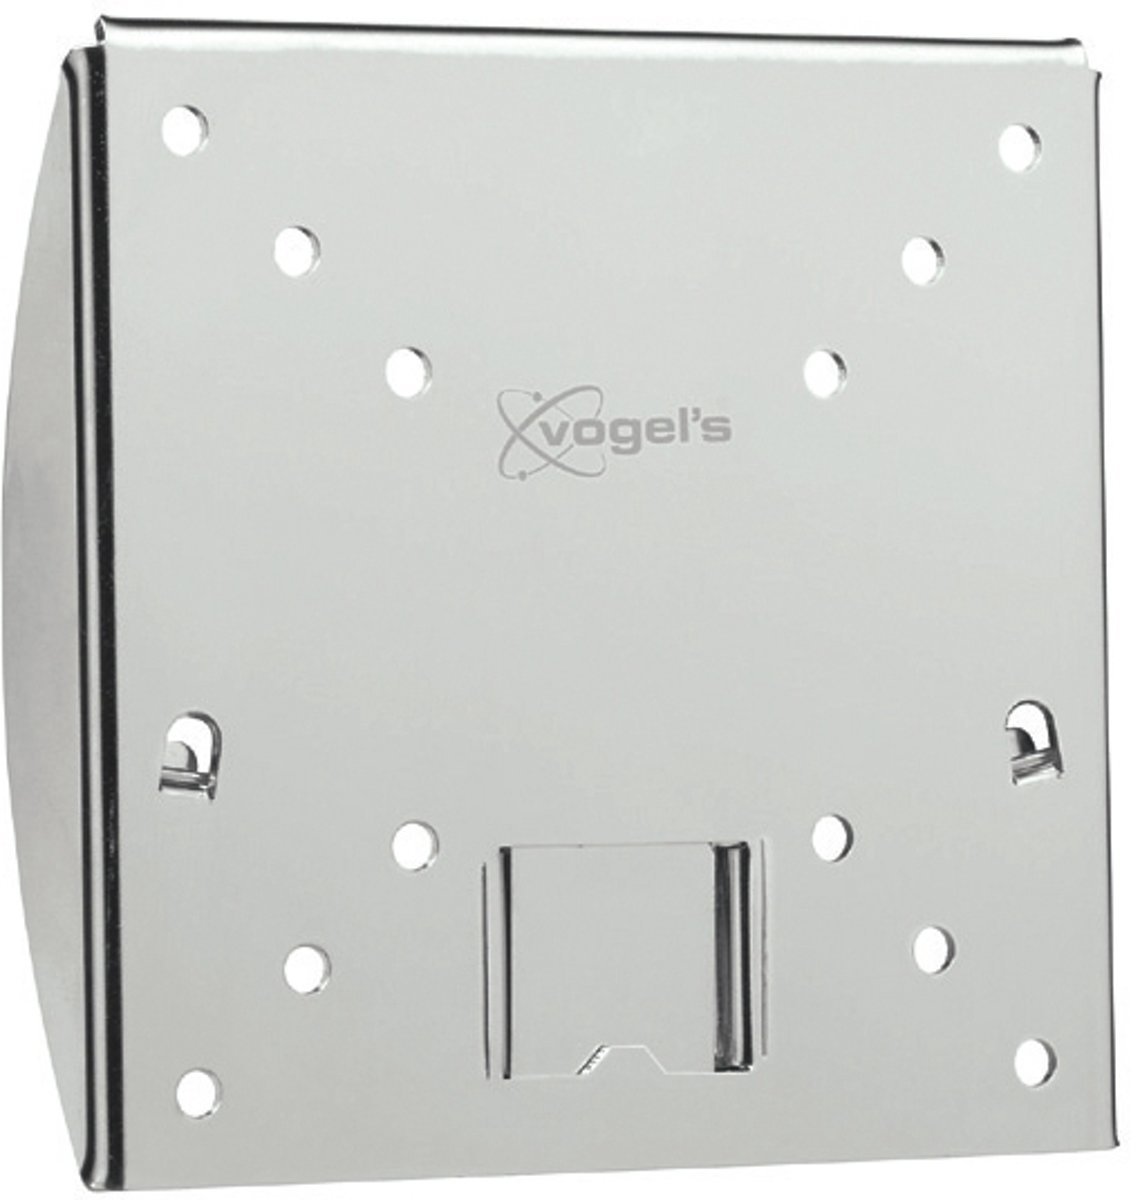 Vogel's Lcd Wall Support kopen